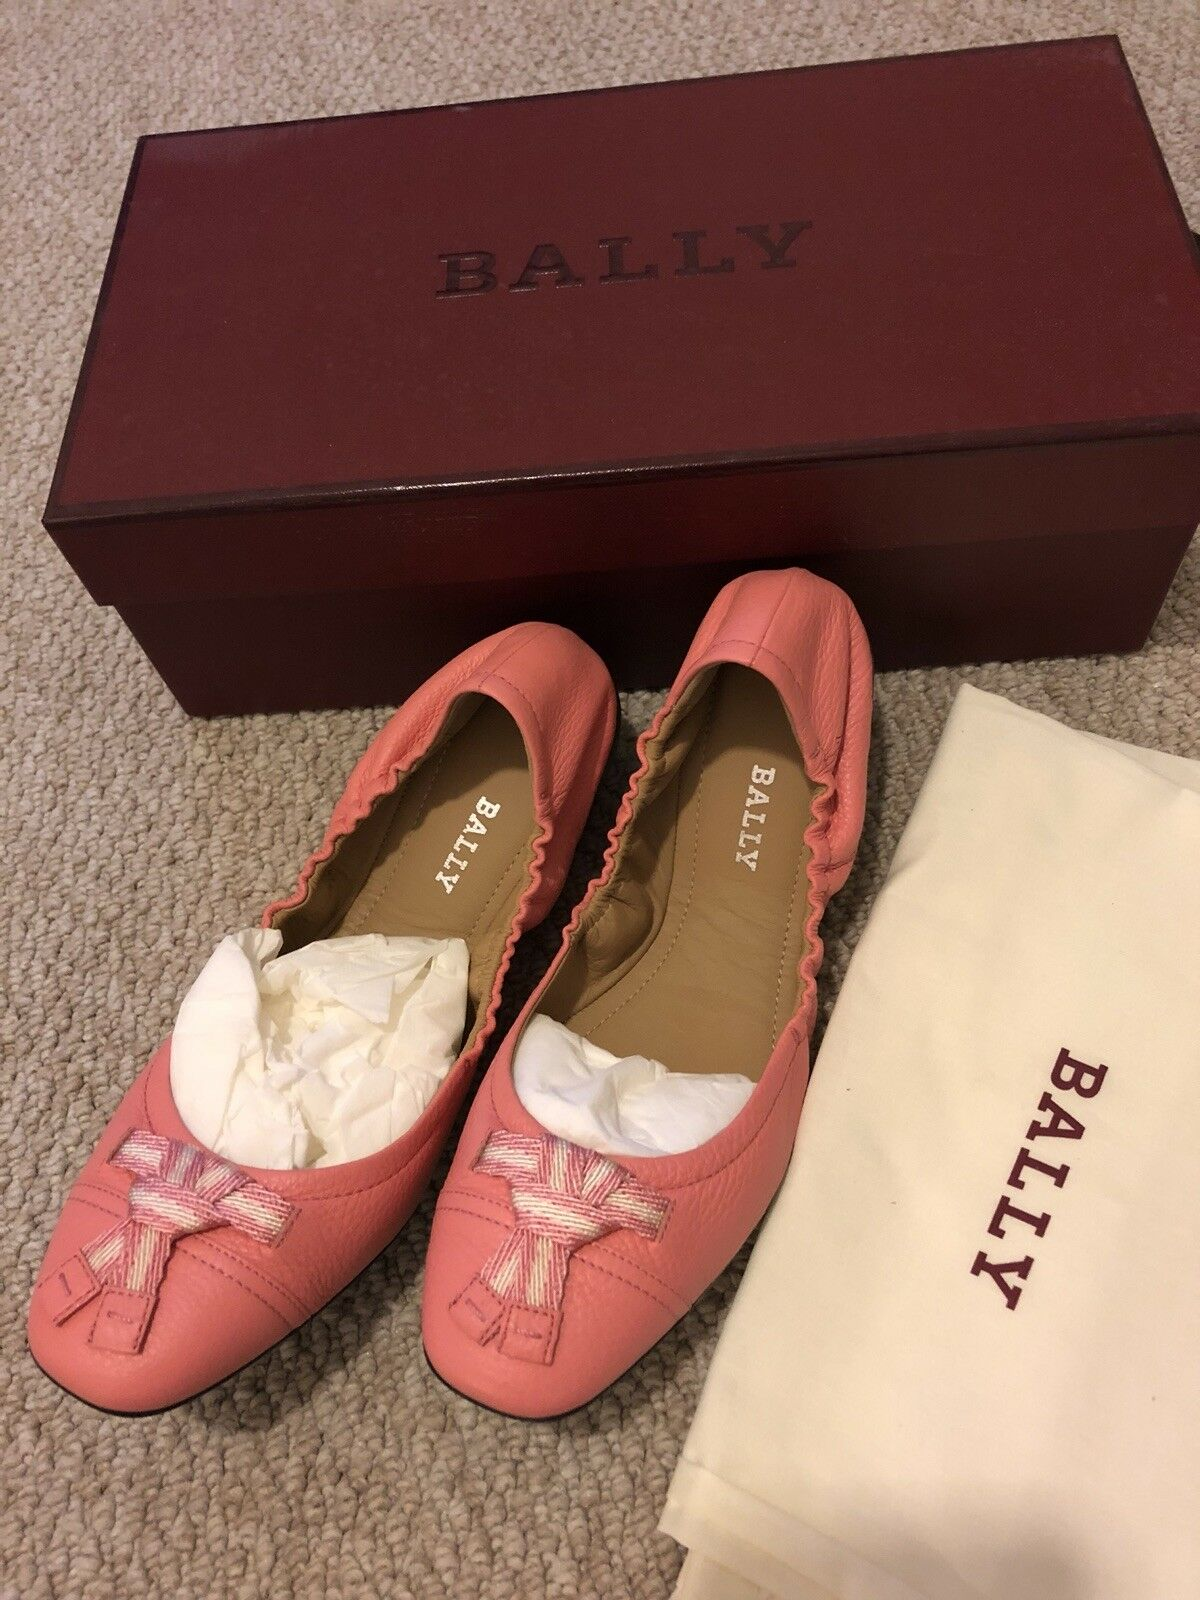 Bally Ballerina (with box and dust bag)